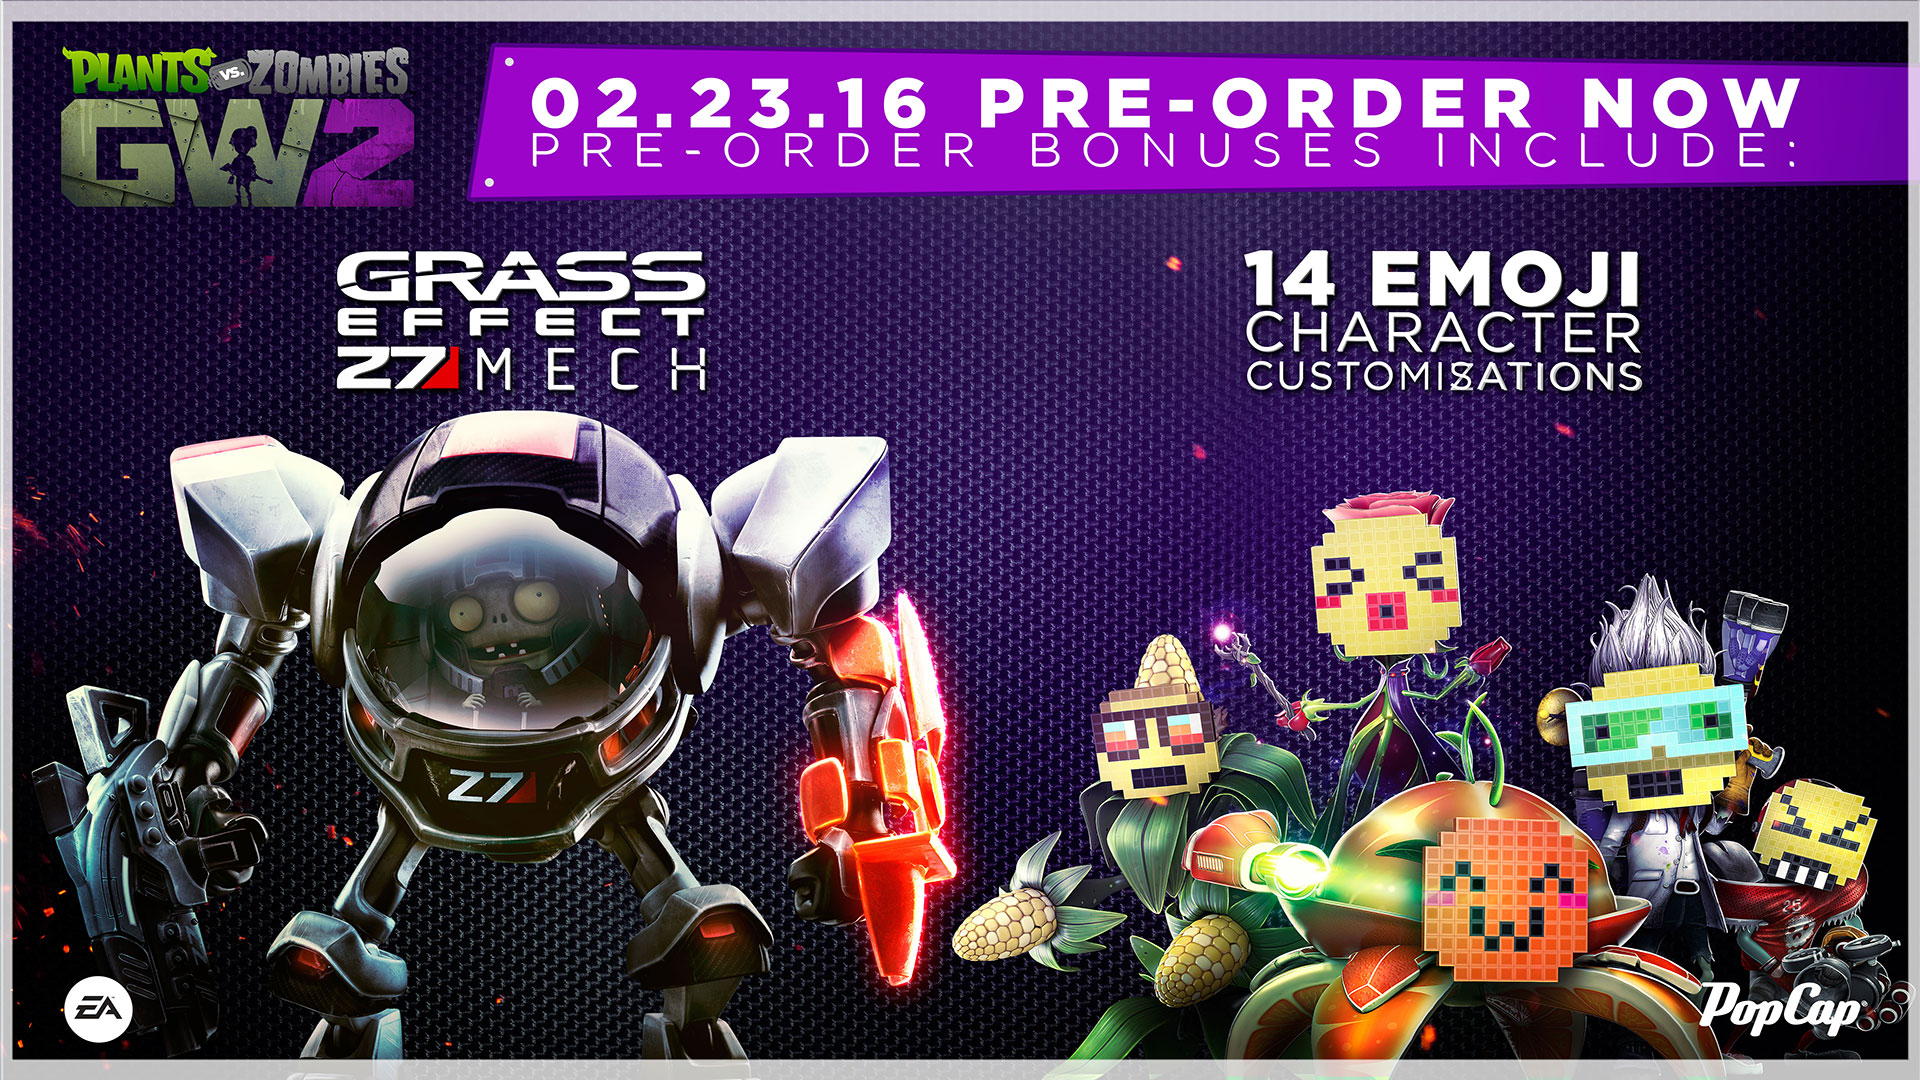 Pre order plants vs zombies garden warfare 2 Plants vs zombies garden warfare 2 event calendar